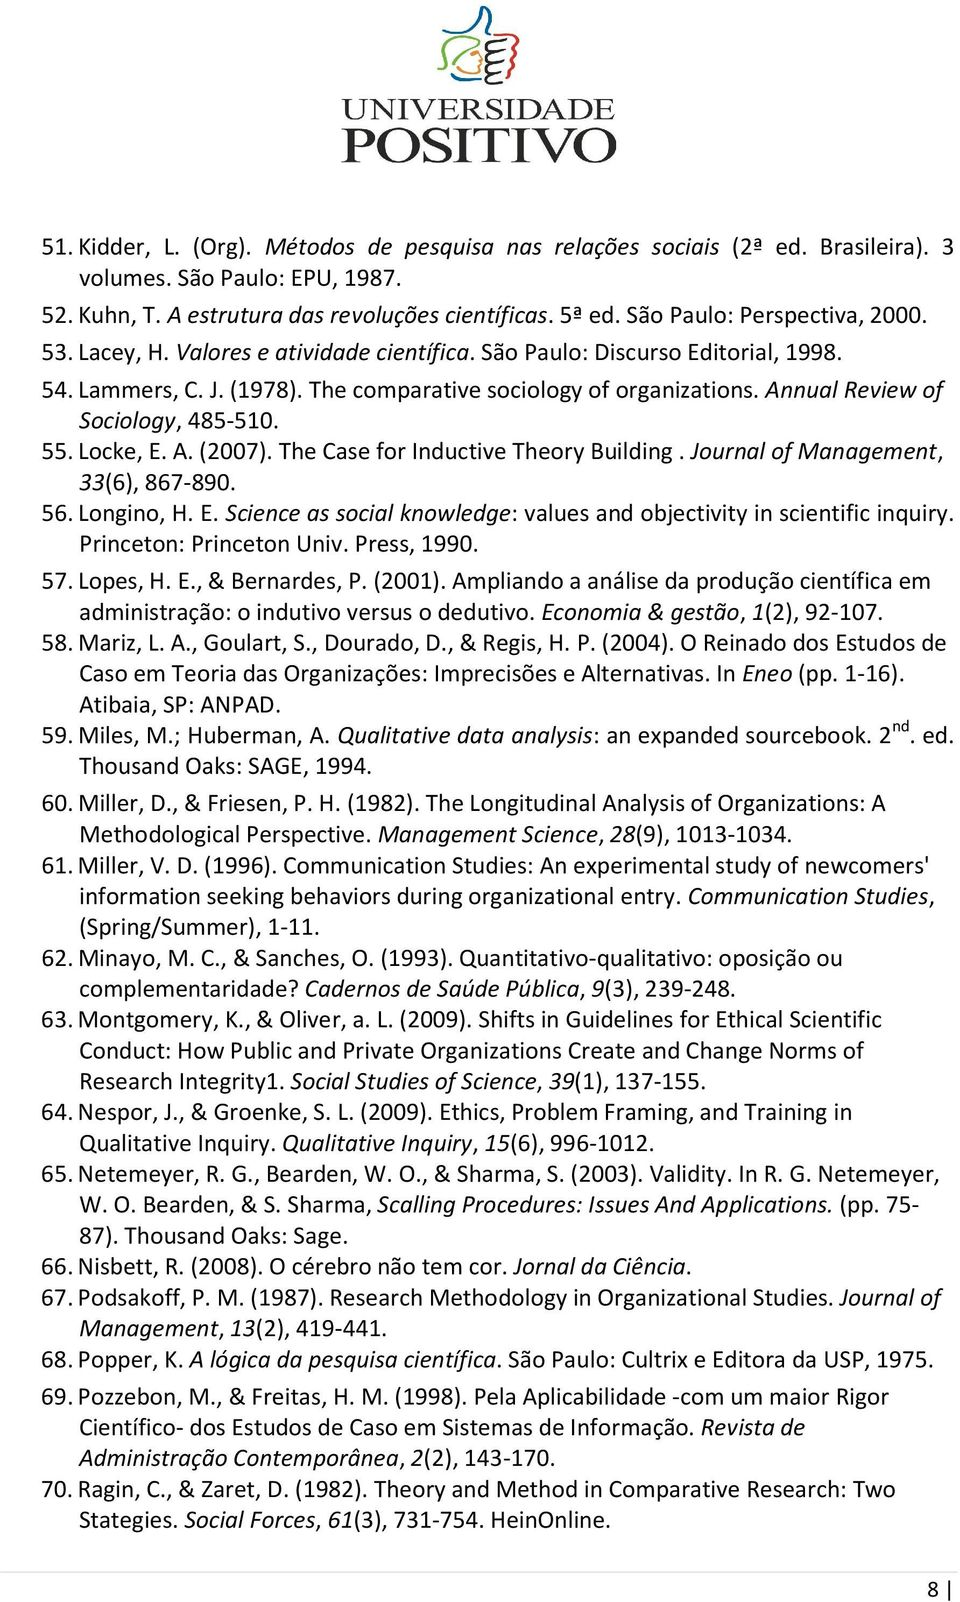 Annual Review of Sociology, 485-510. 55. Locke, E. A. (2007). The Case for Inductive Theory Building. Journal of Management, 33(6), 867-890. 56. Longino, H. E. Science as social knowledge: values and objectivity in scientific inquiry.